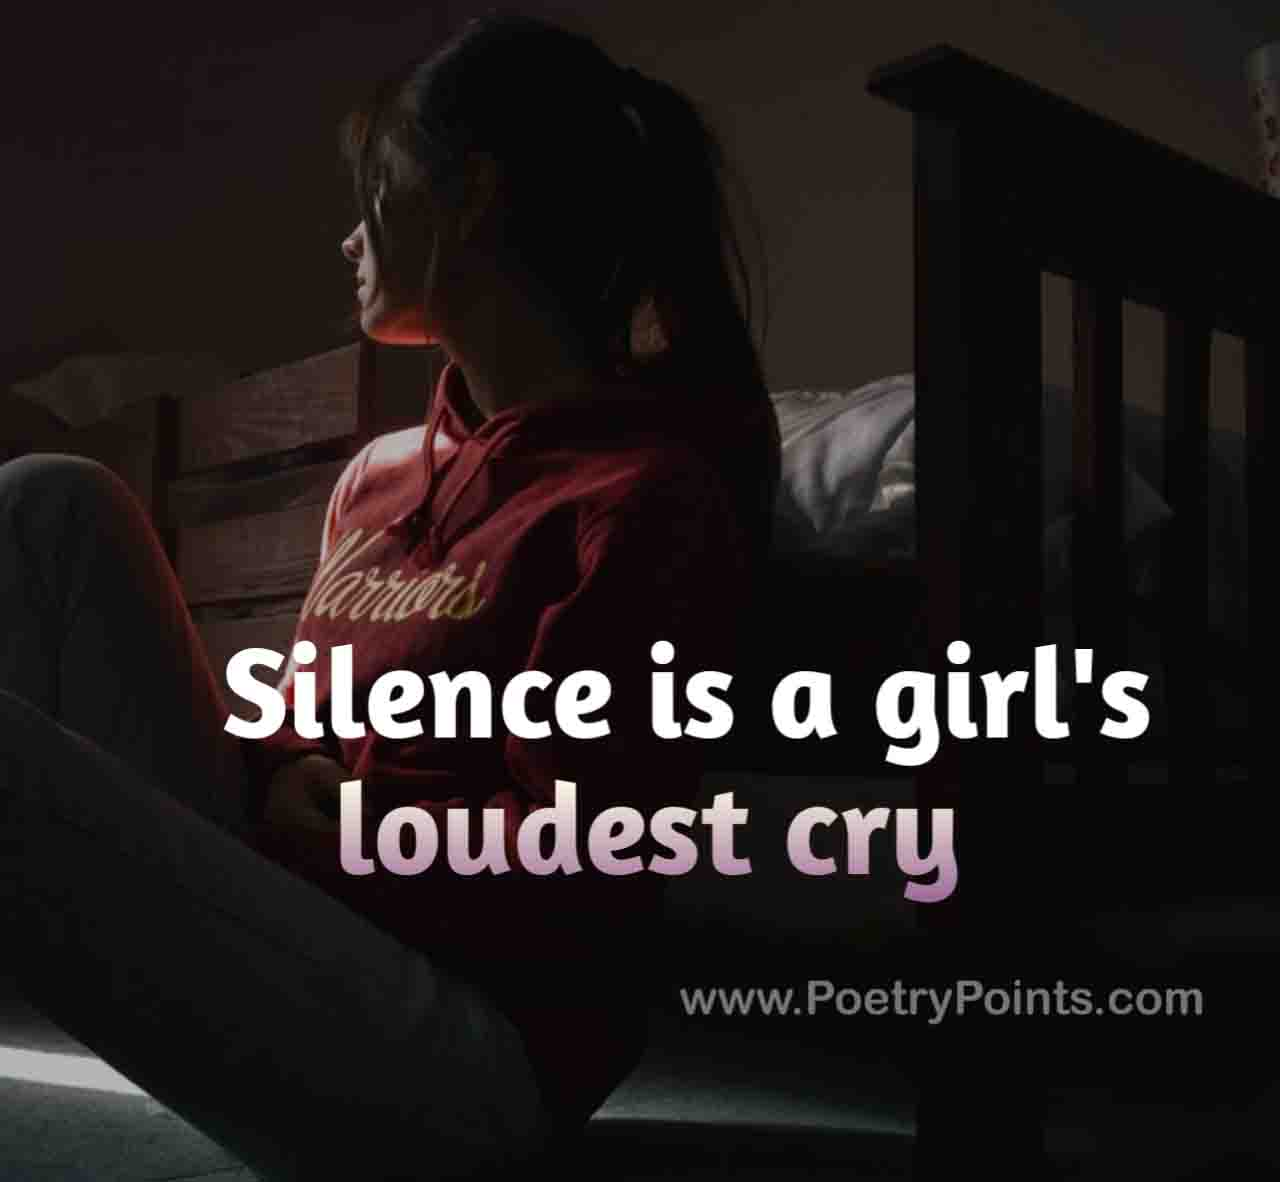 When a woman goes silent on you